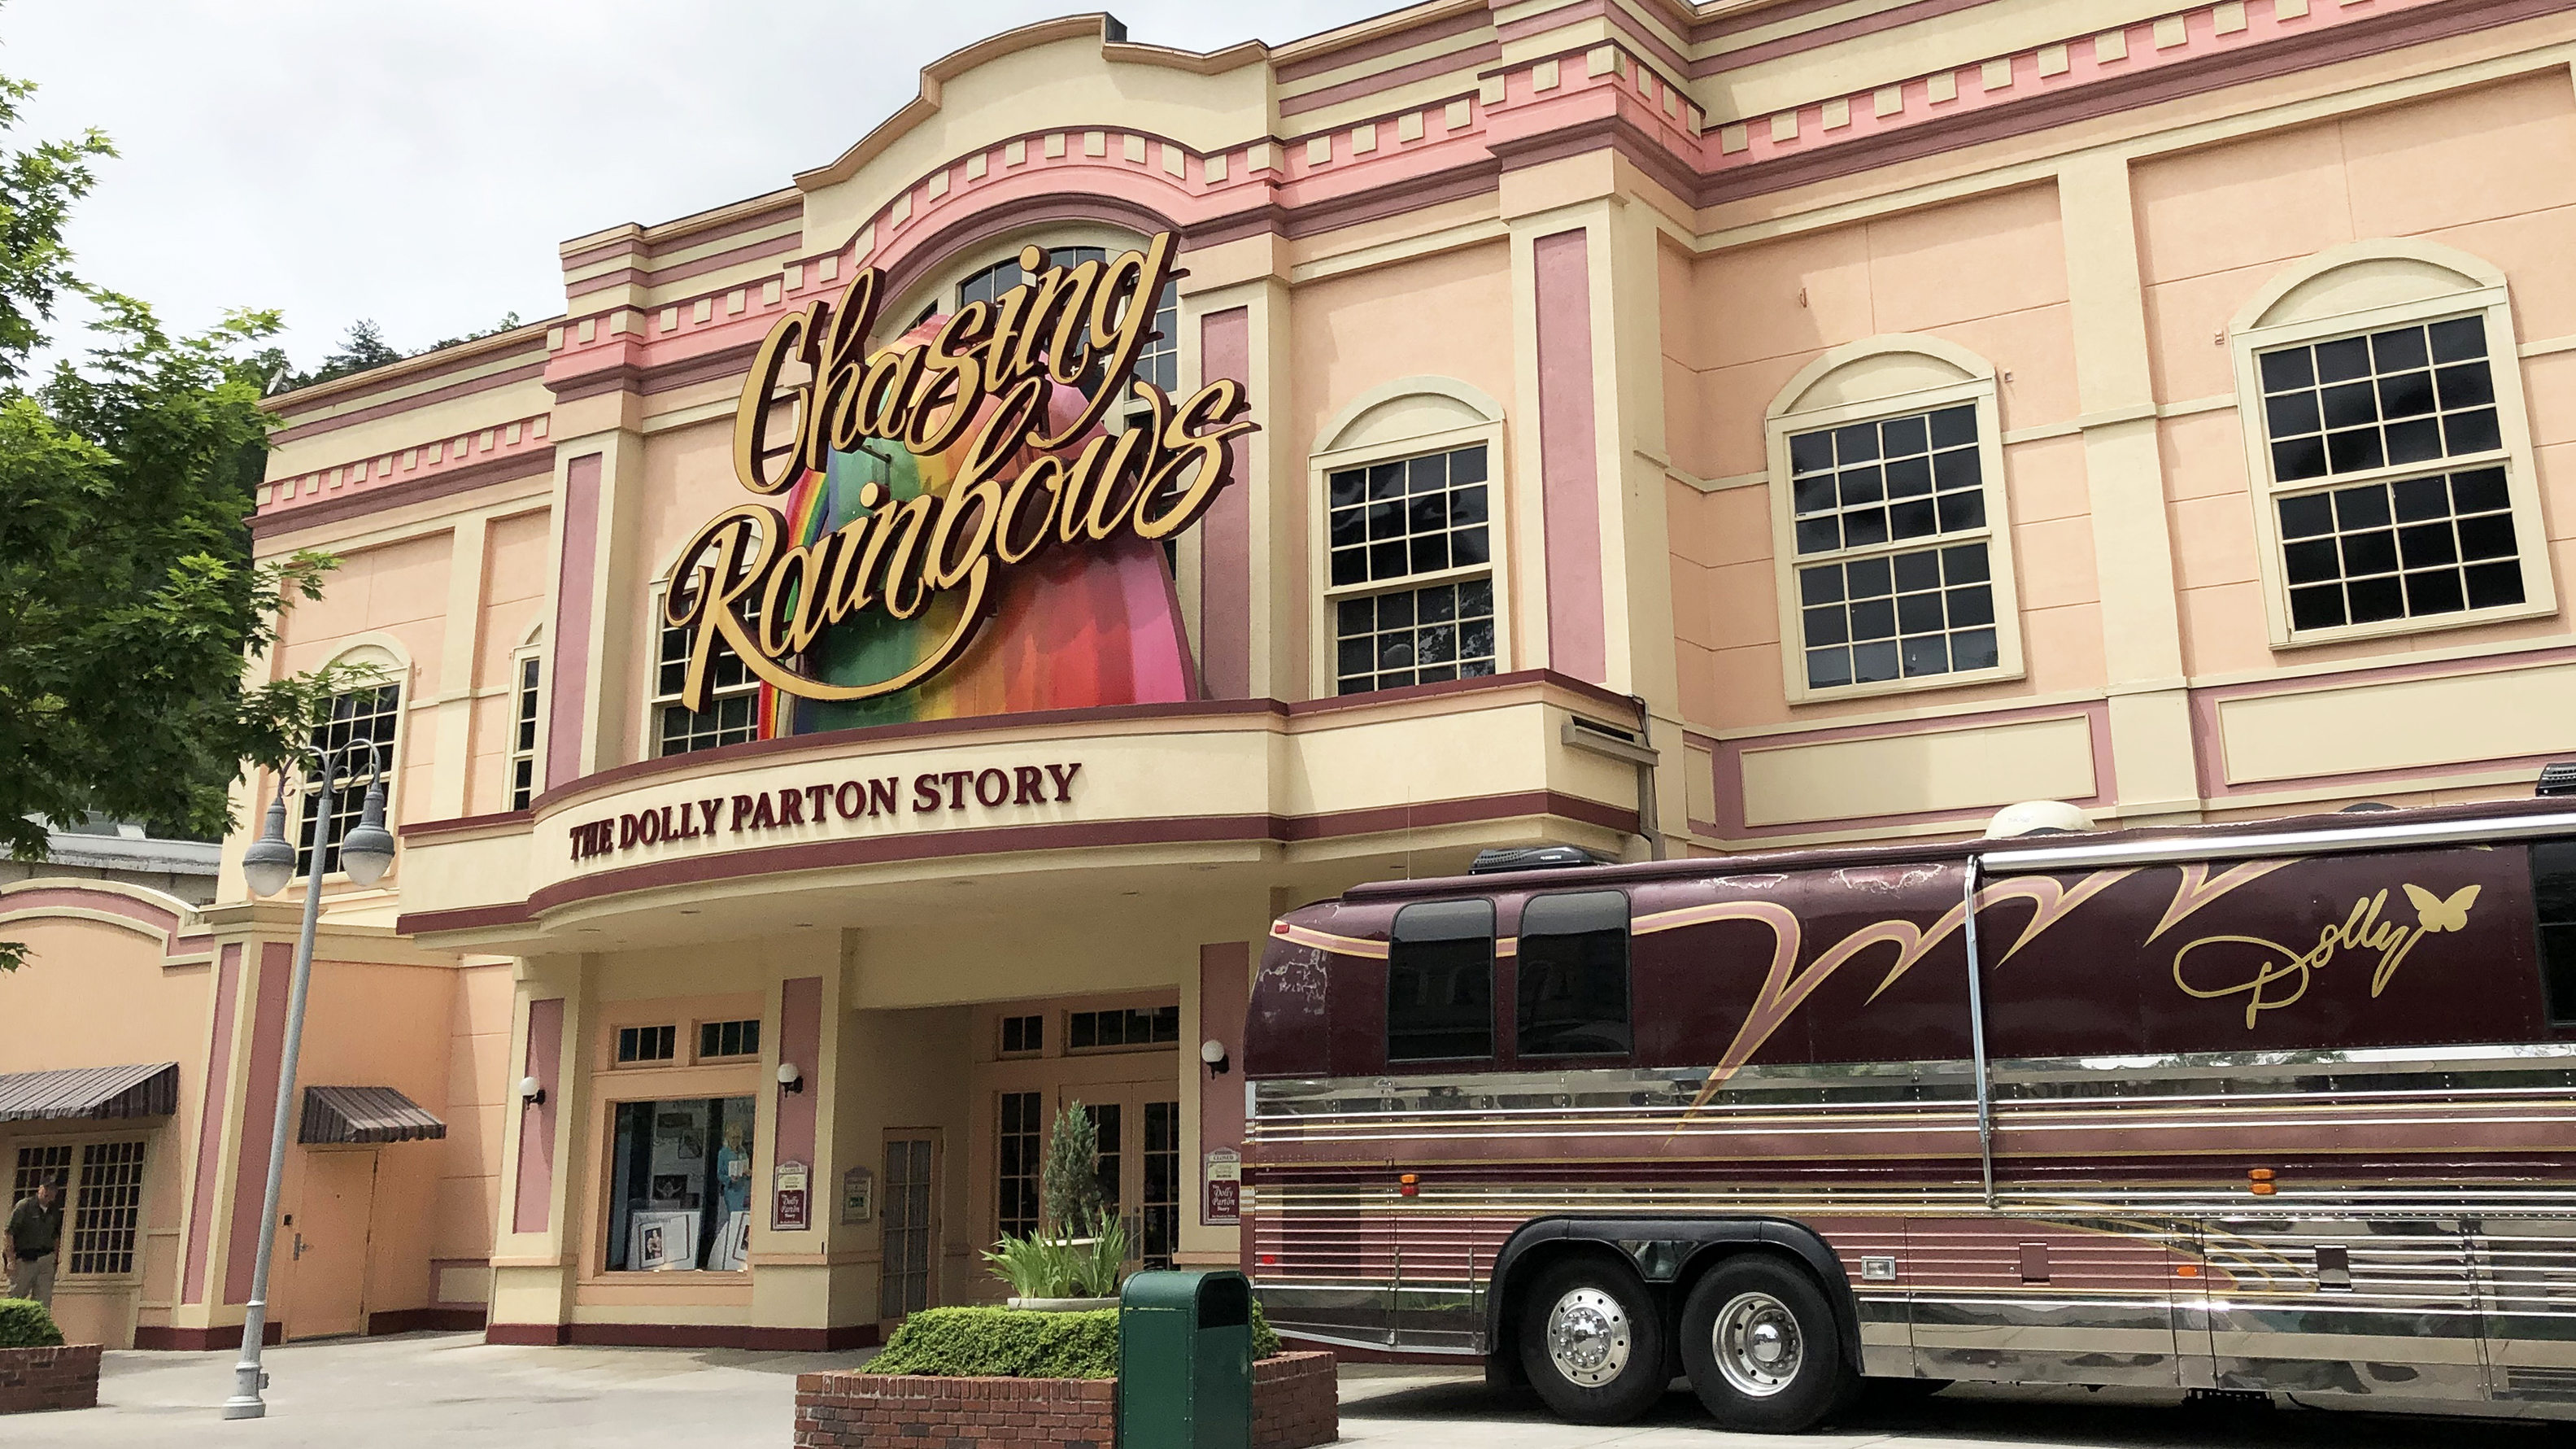 The Chasing Rainbows museum features exhibits devoted to Dolly Parton's life and career, including costumes and gowns worn by Parton, as well as her many awards. Photo by MeLinda Schnyder.